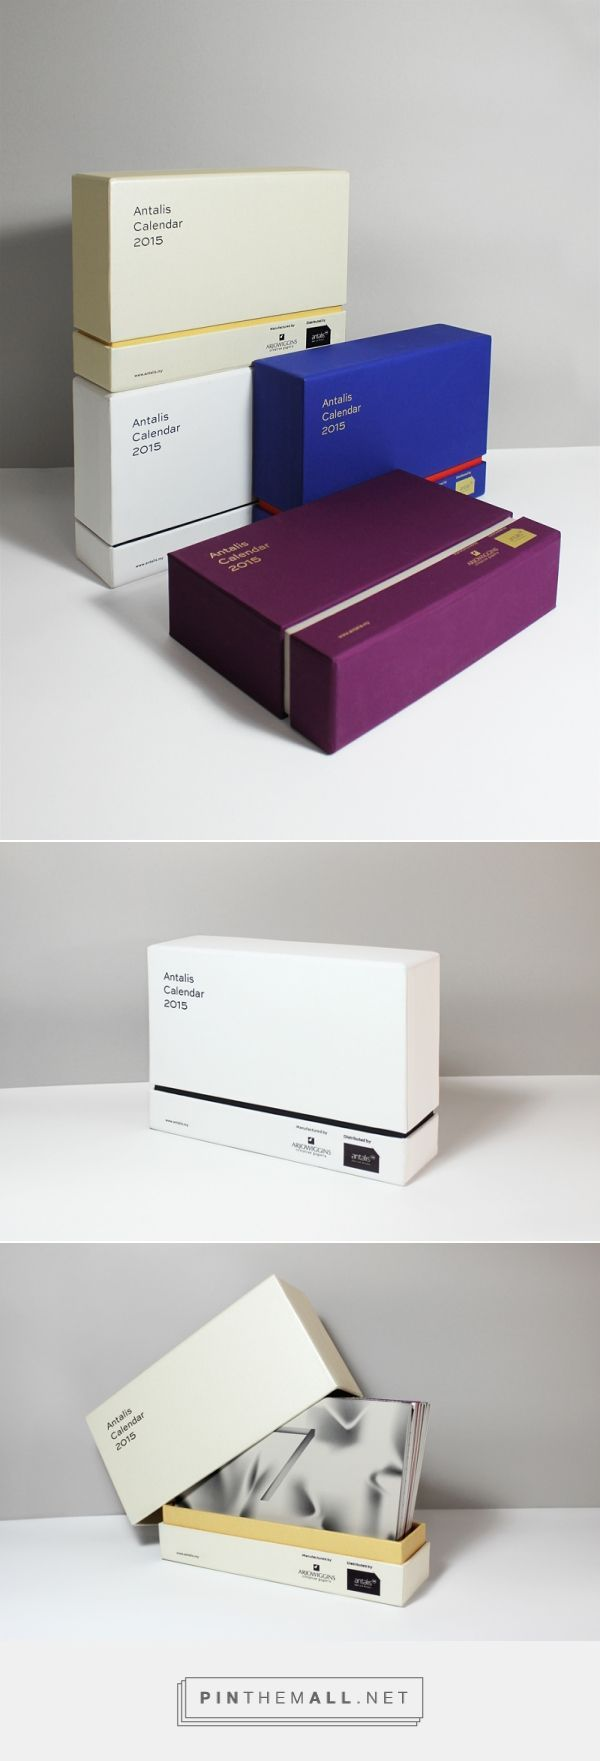 Antalis Calendar 2015 on Behance by Karming Somethingwong, Kuala Lumpur, Malaysia curated by Packaging Diva PD. Antalis calendar packaging 2015, Malaysia.